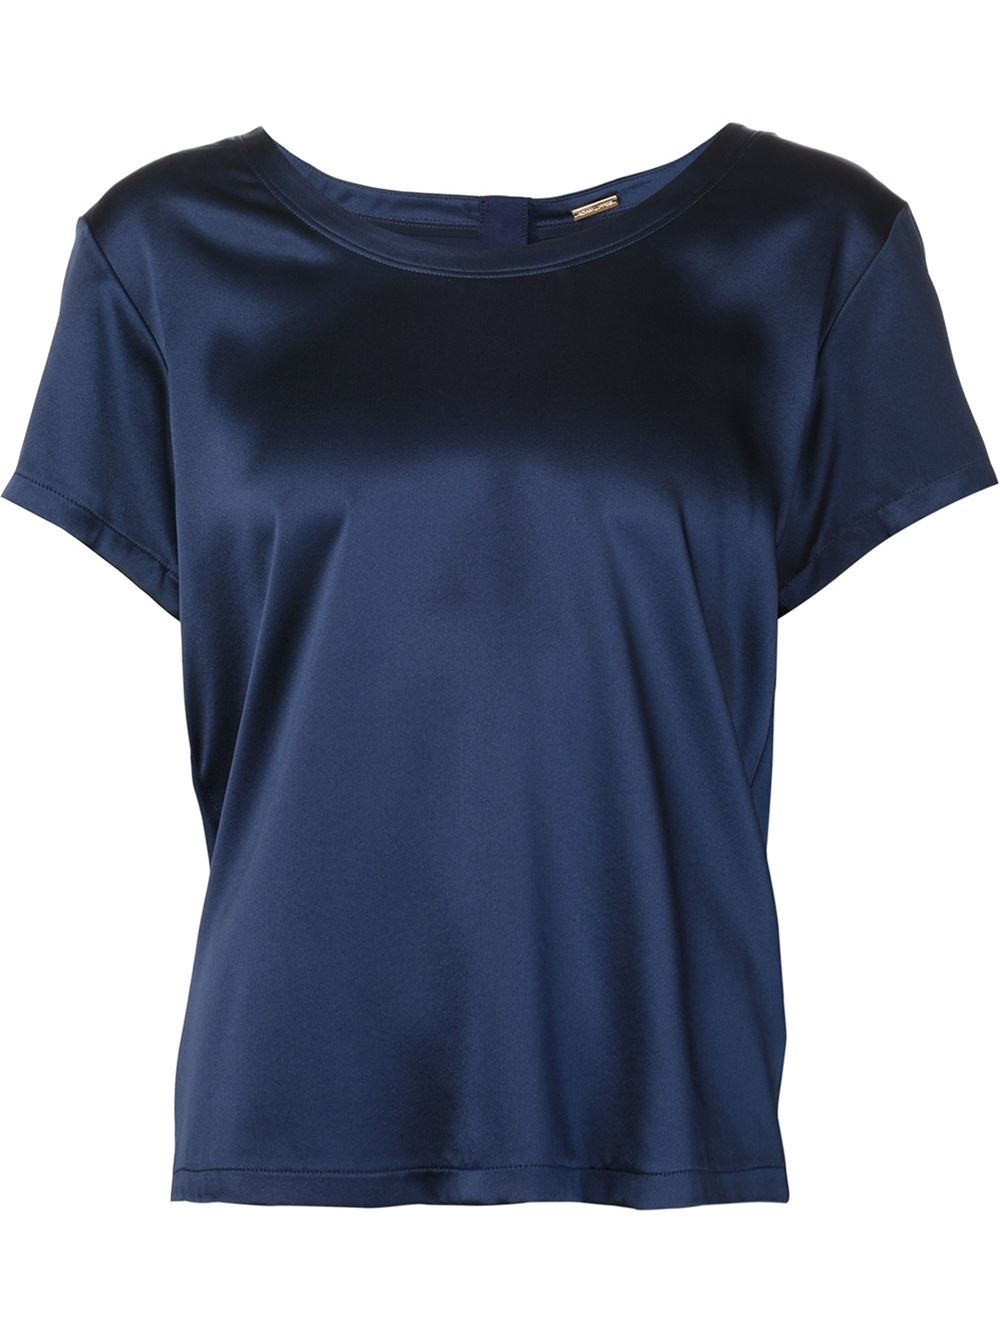 Adam lippes scoop neck t shirt in blue lyst for Adam lippes t shirt